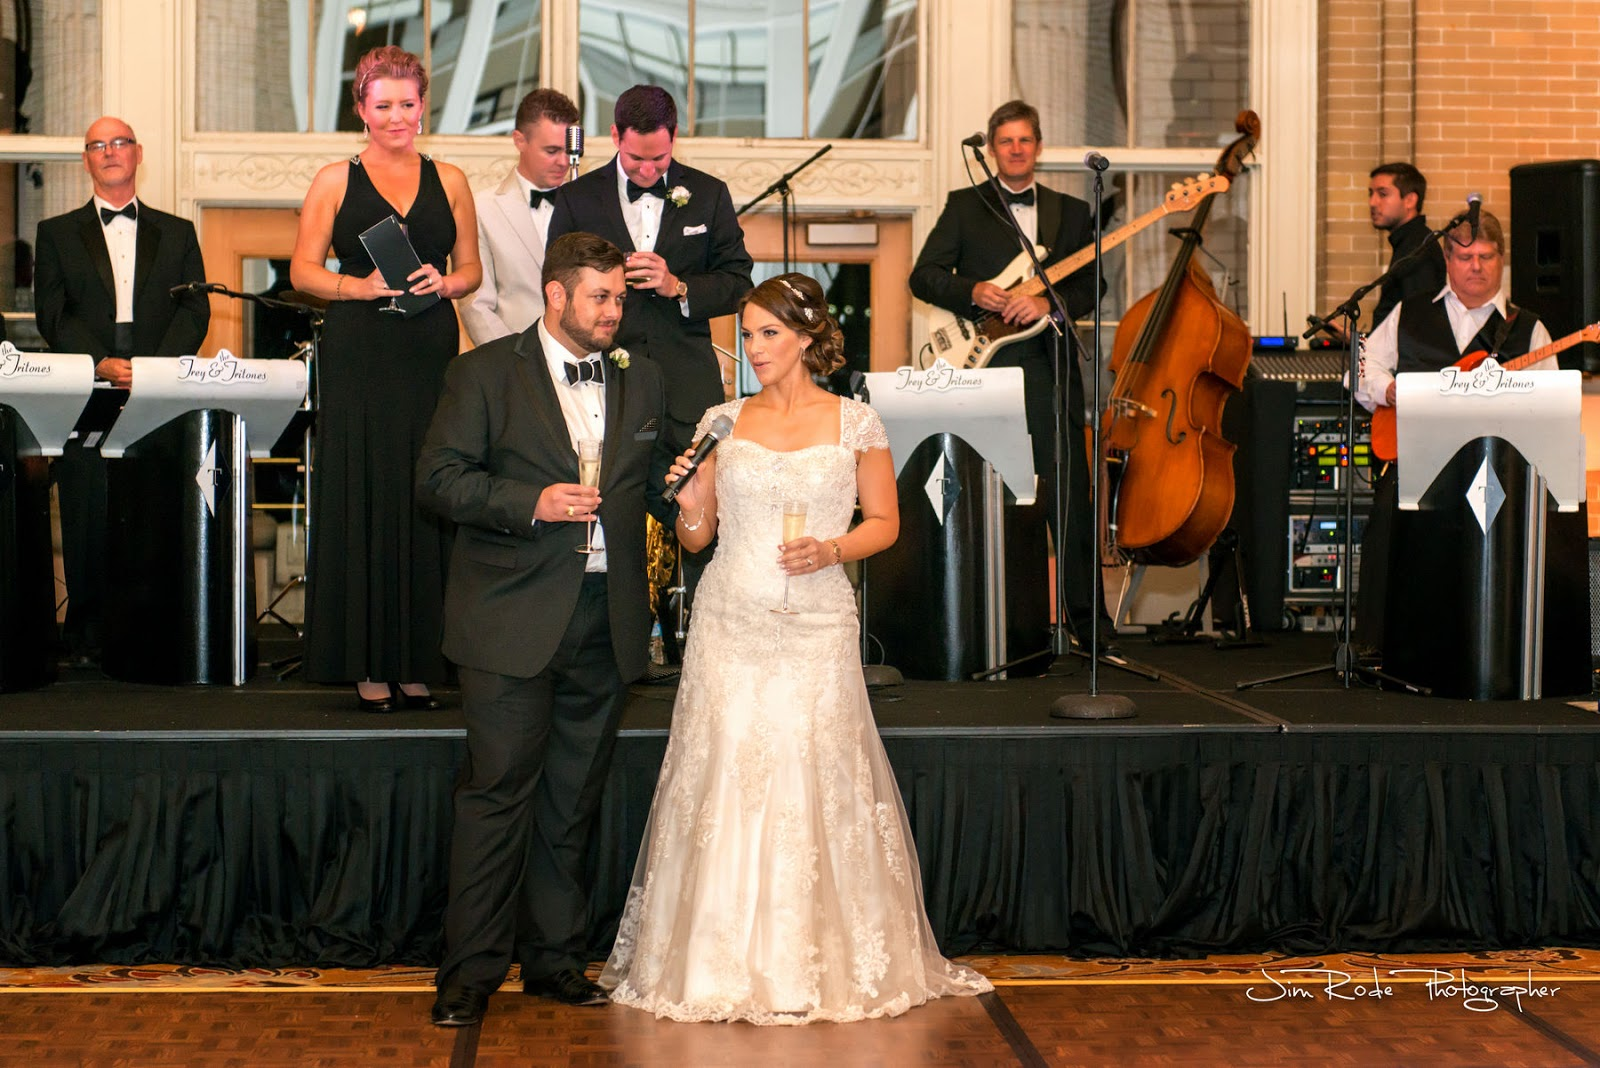 the wedding couple give thanks at thier Union Station reception